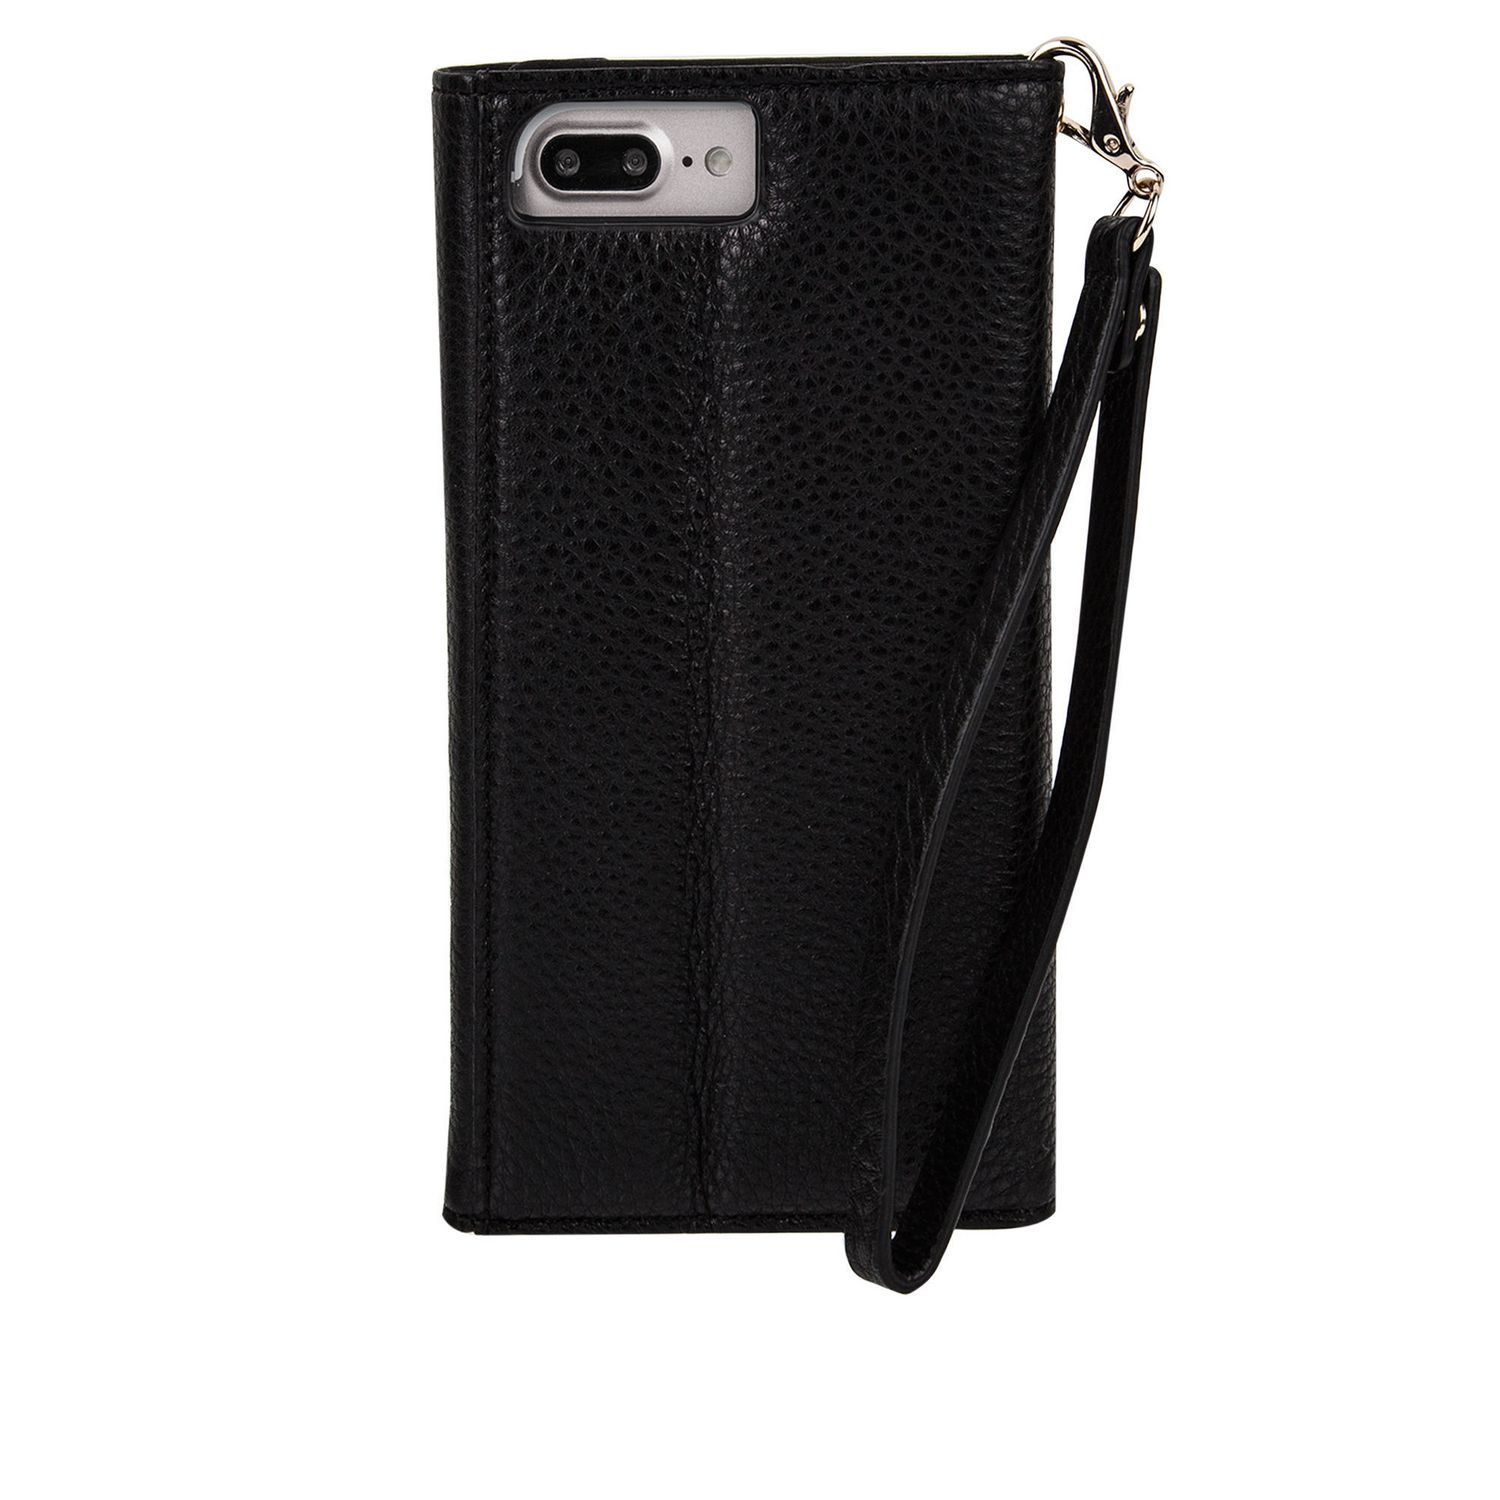 pretty nice 2675f 39532 Case-Mate Leather Wristlet Folio Case for iPhone 6s/7/8 in Black